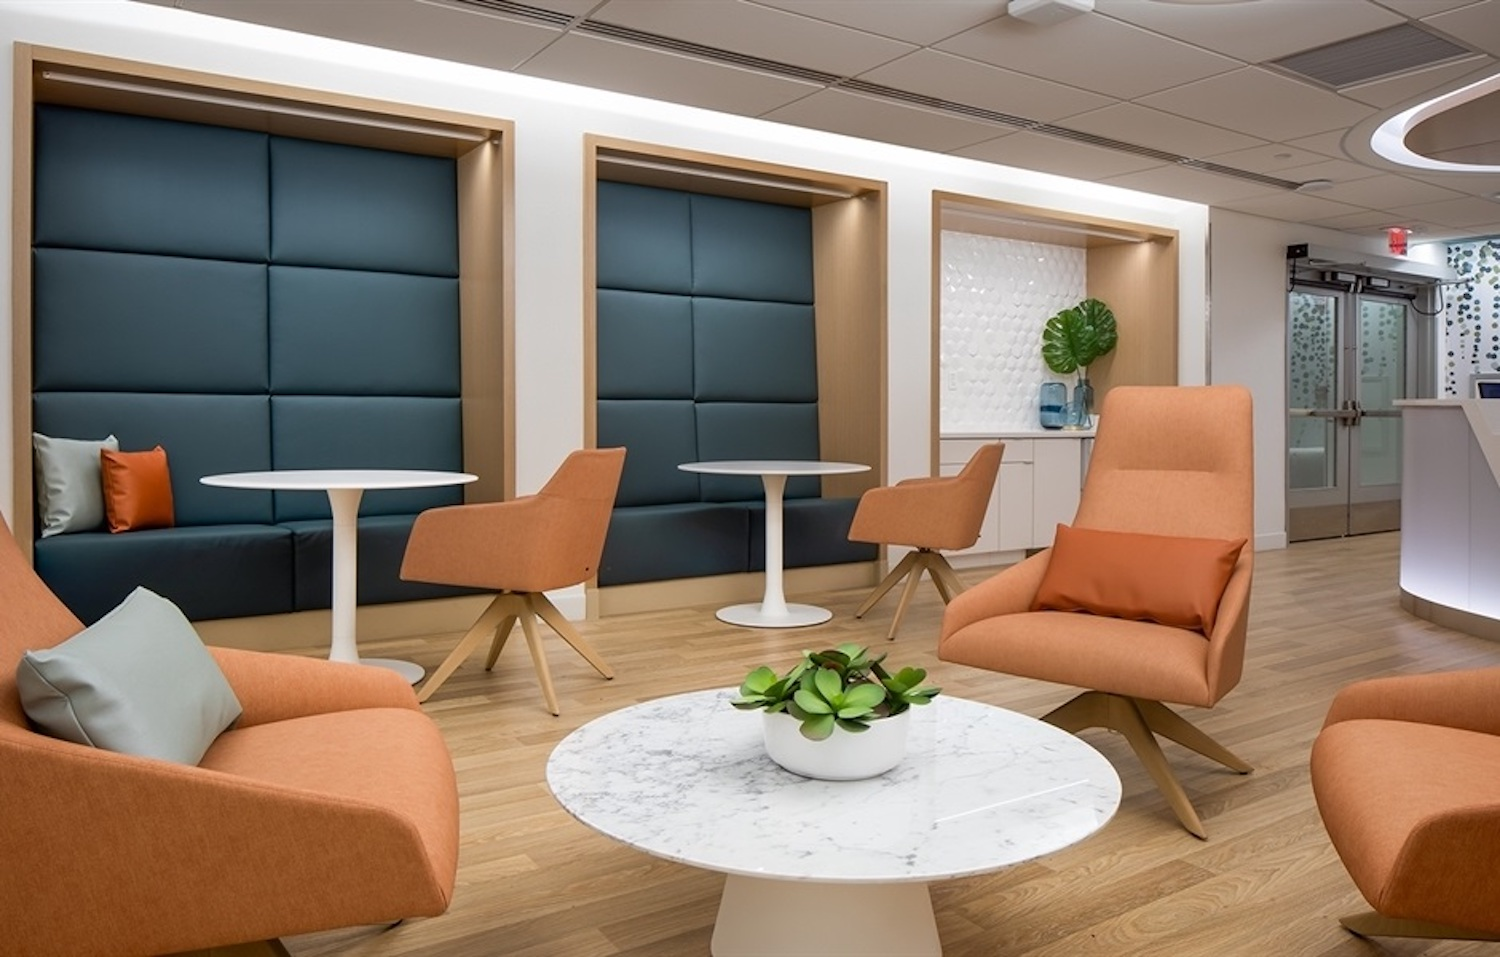 Projects we Love: Nicklaus Children's Hospital